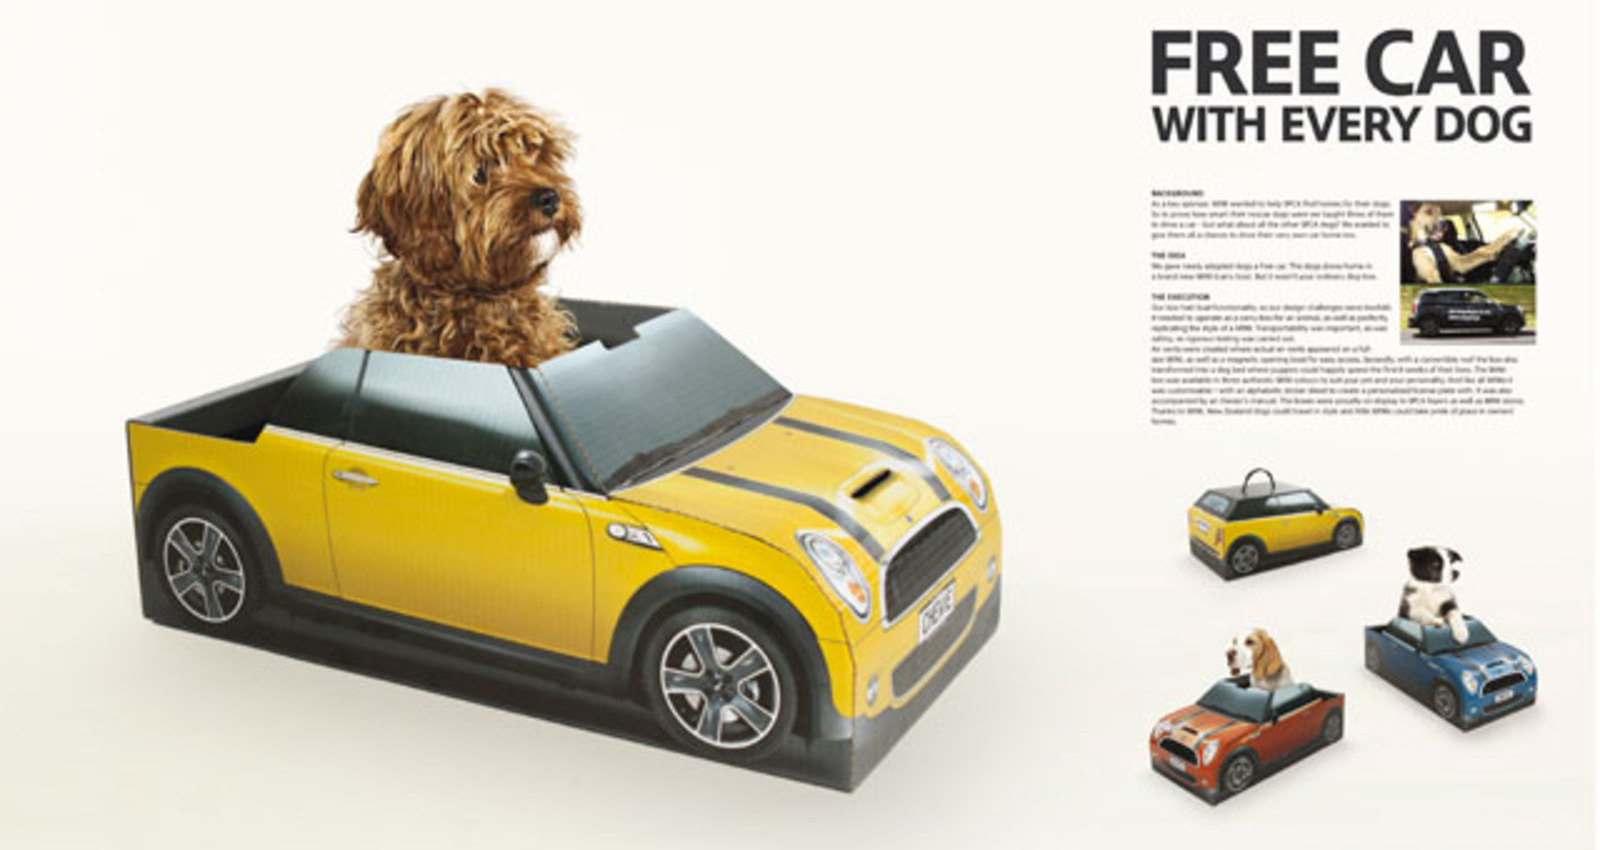 Free car with every dog.